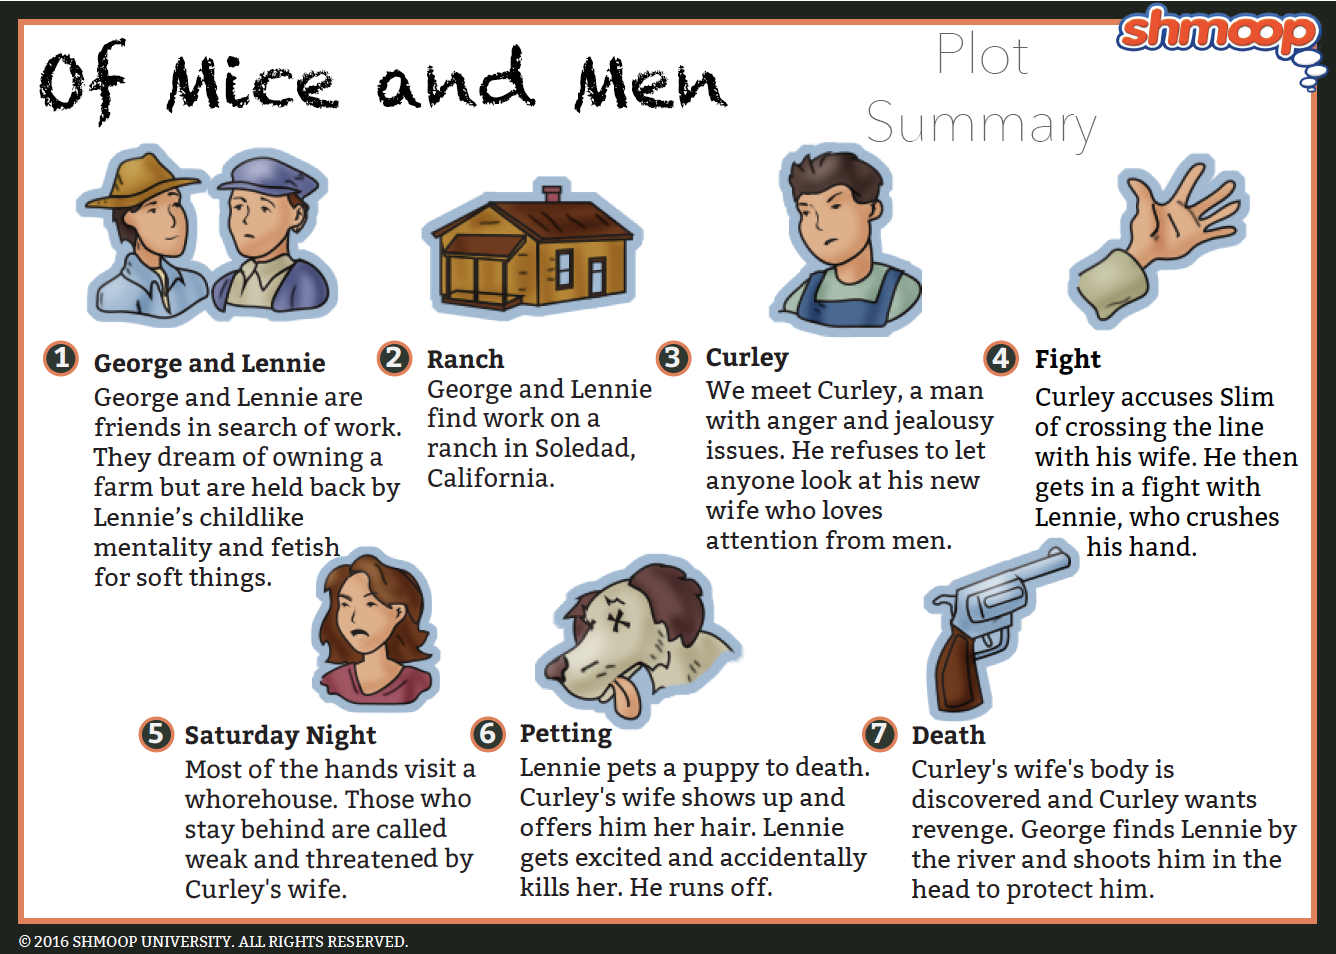 a comparison of the book and movie of mice and men by john steinbeck Of mice and men differences between movie and book after having read the   recent film adaptation of john steinbeck's majorly successful novel, of mice and .